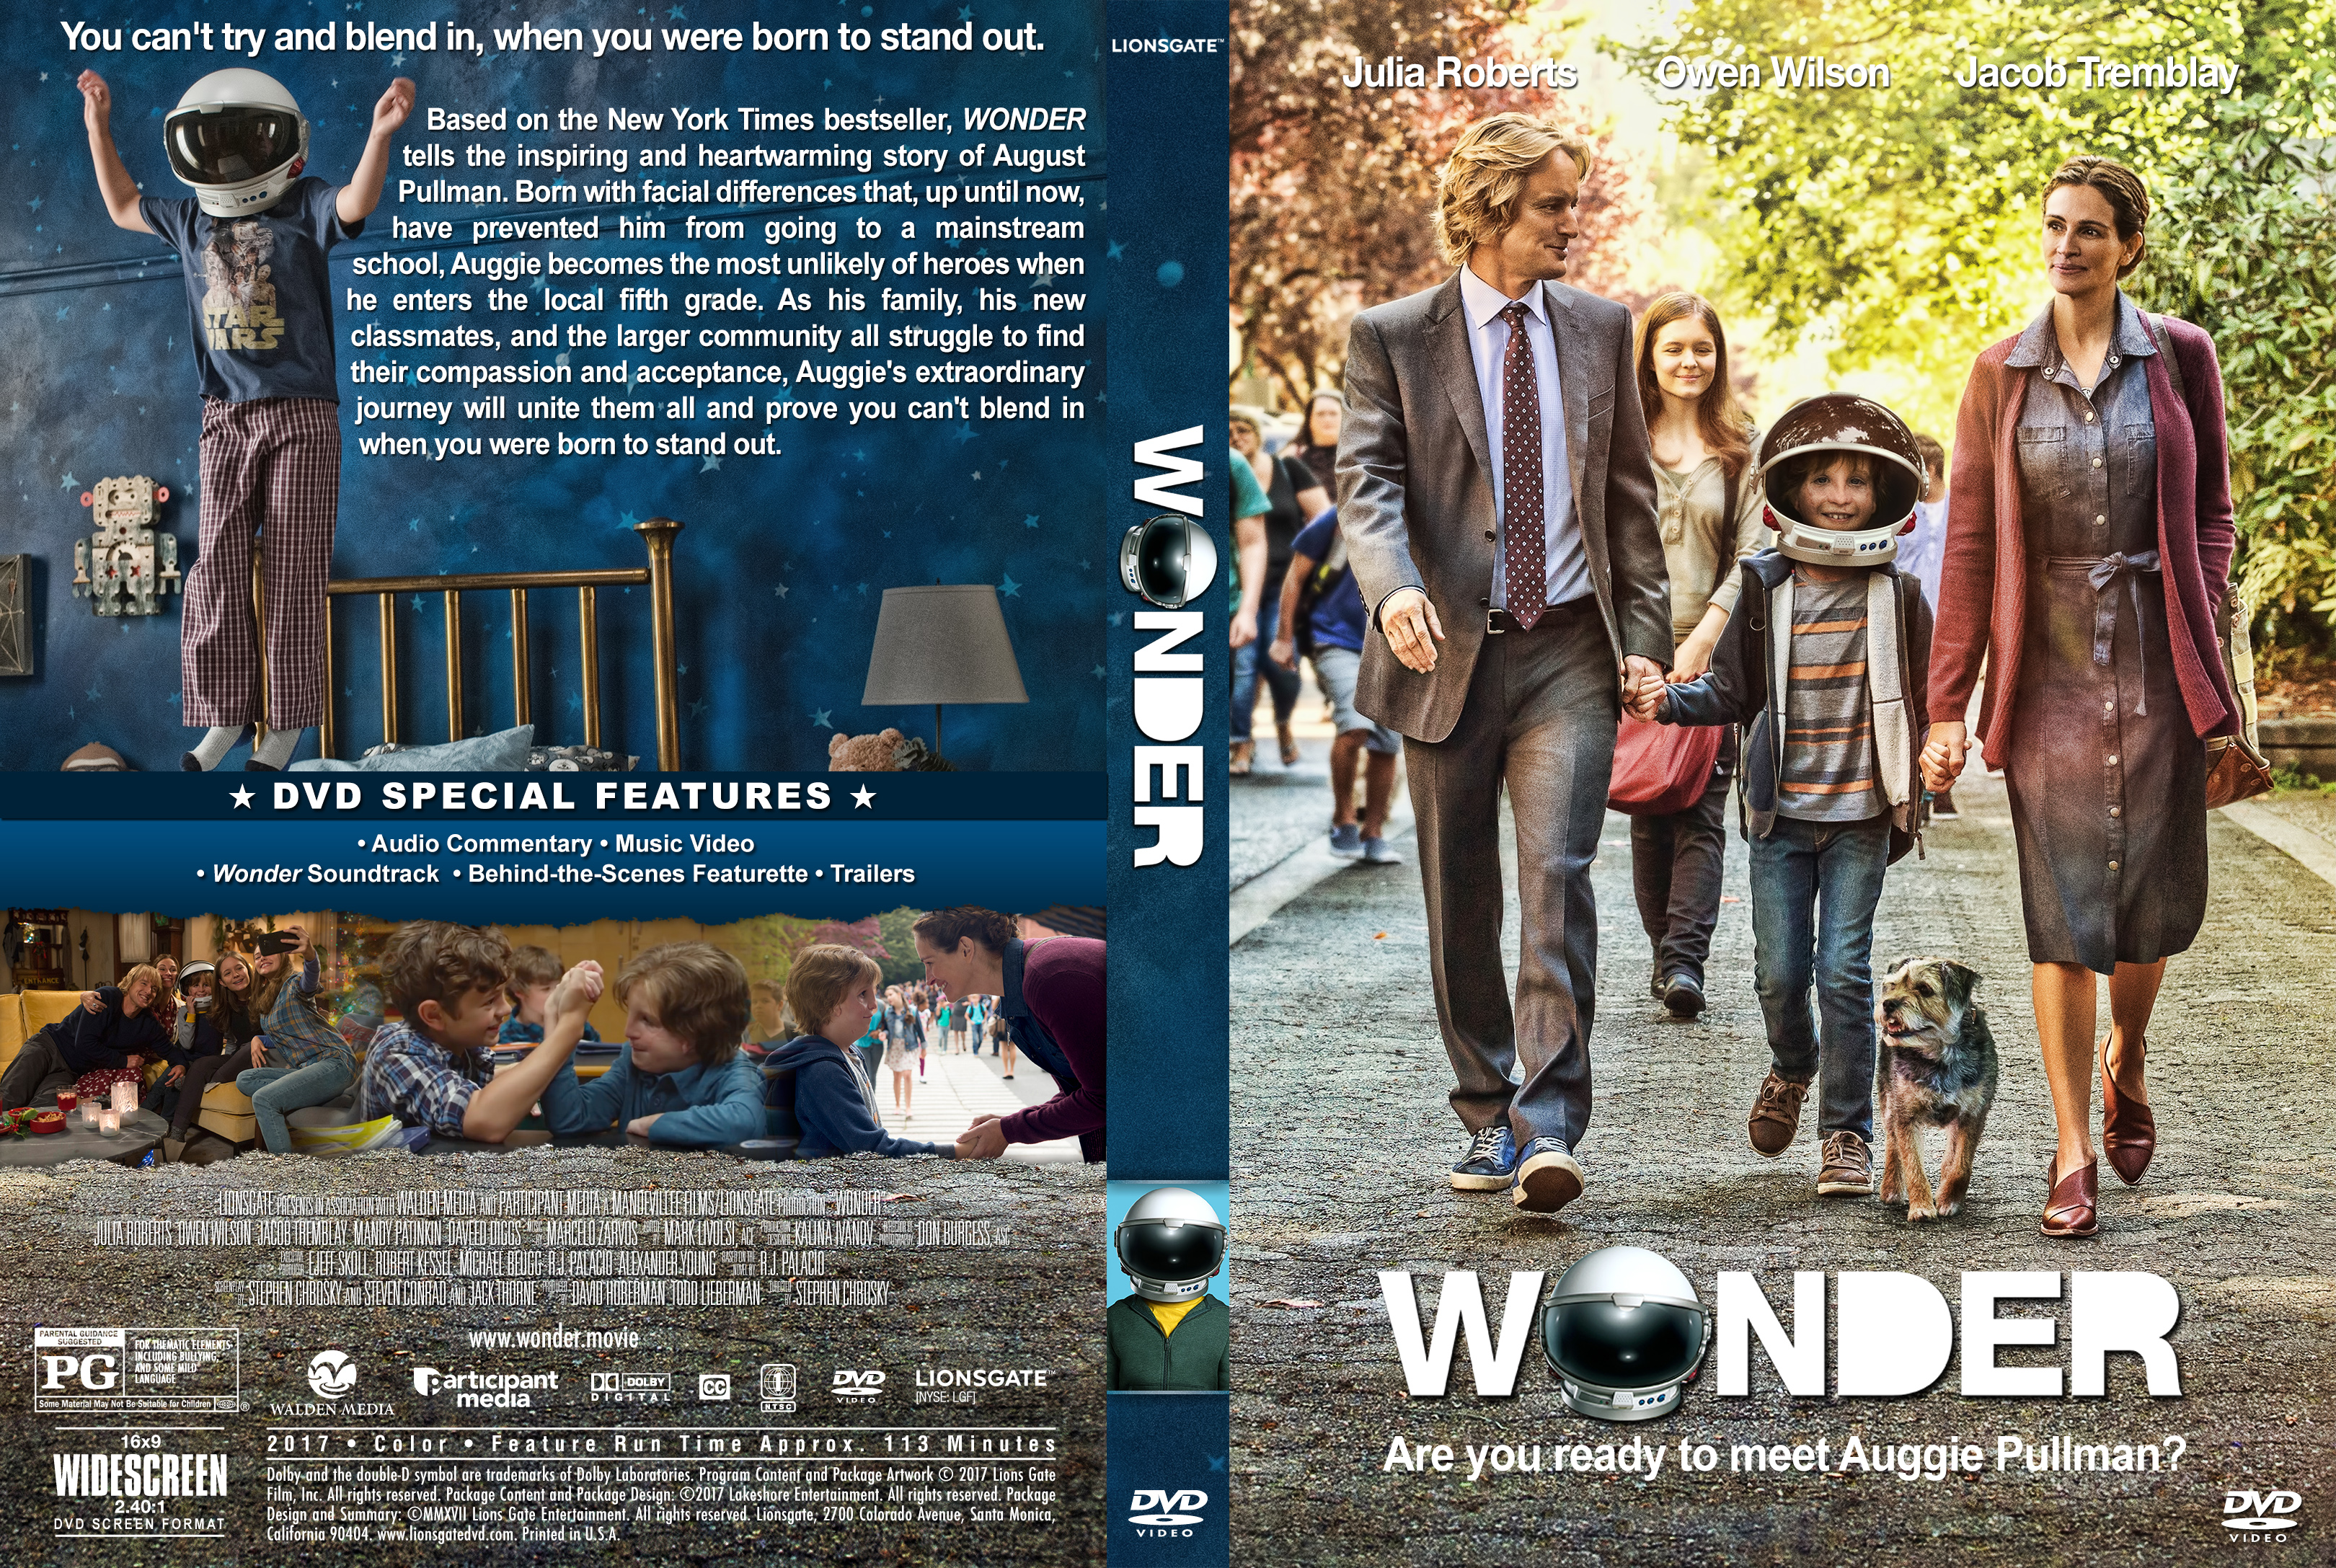 Wonder 2017 Full Movie Abycamp